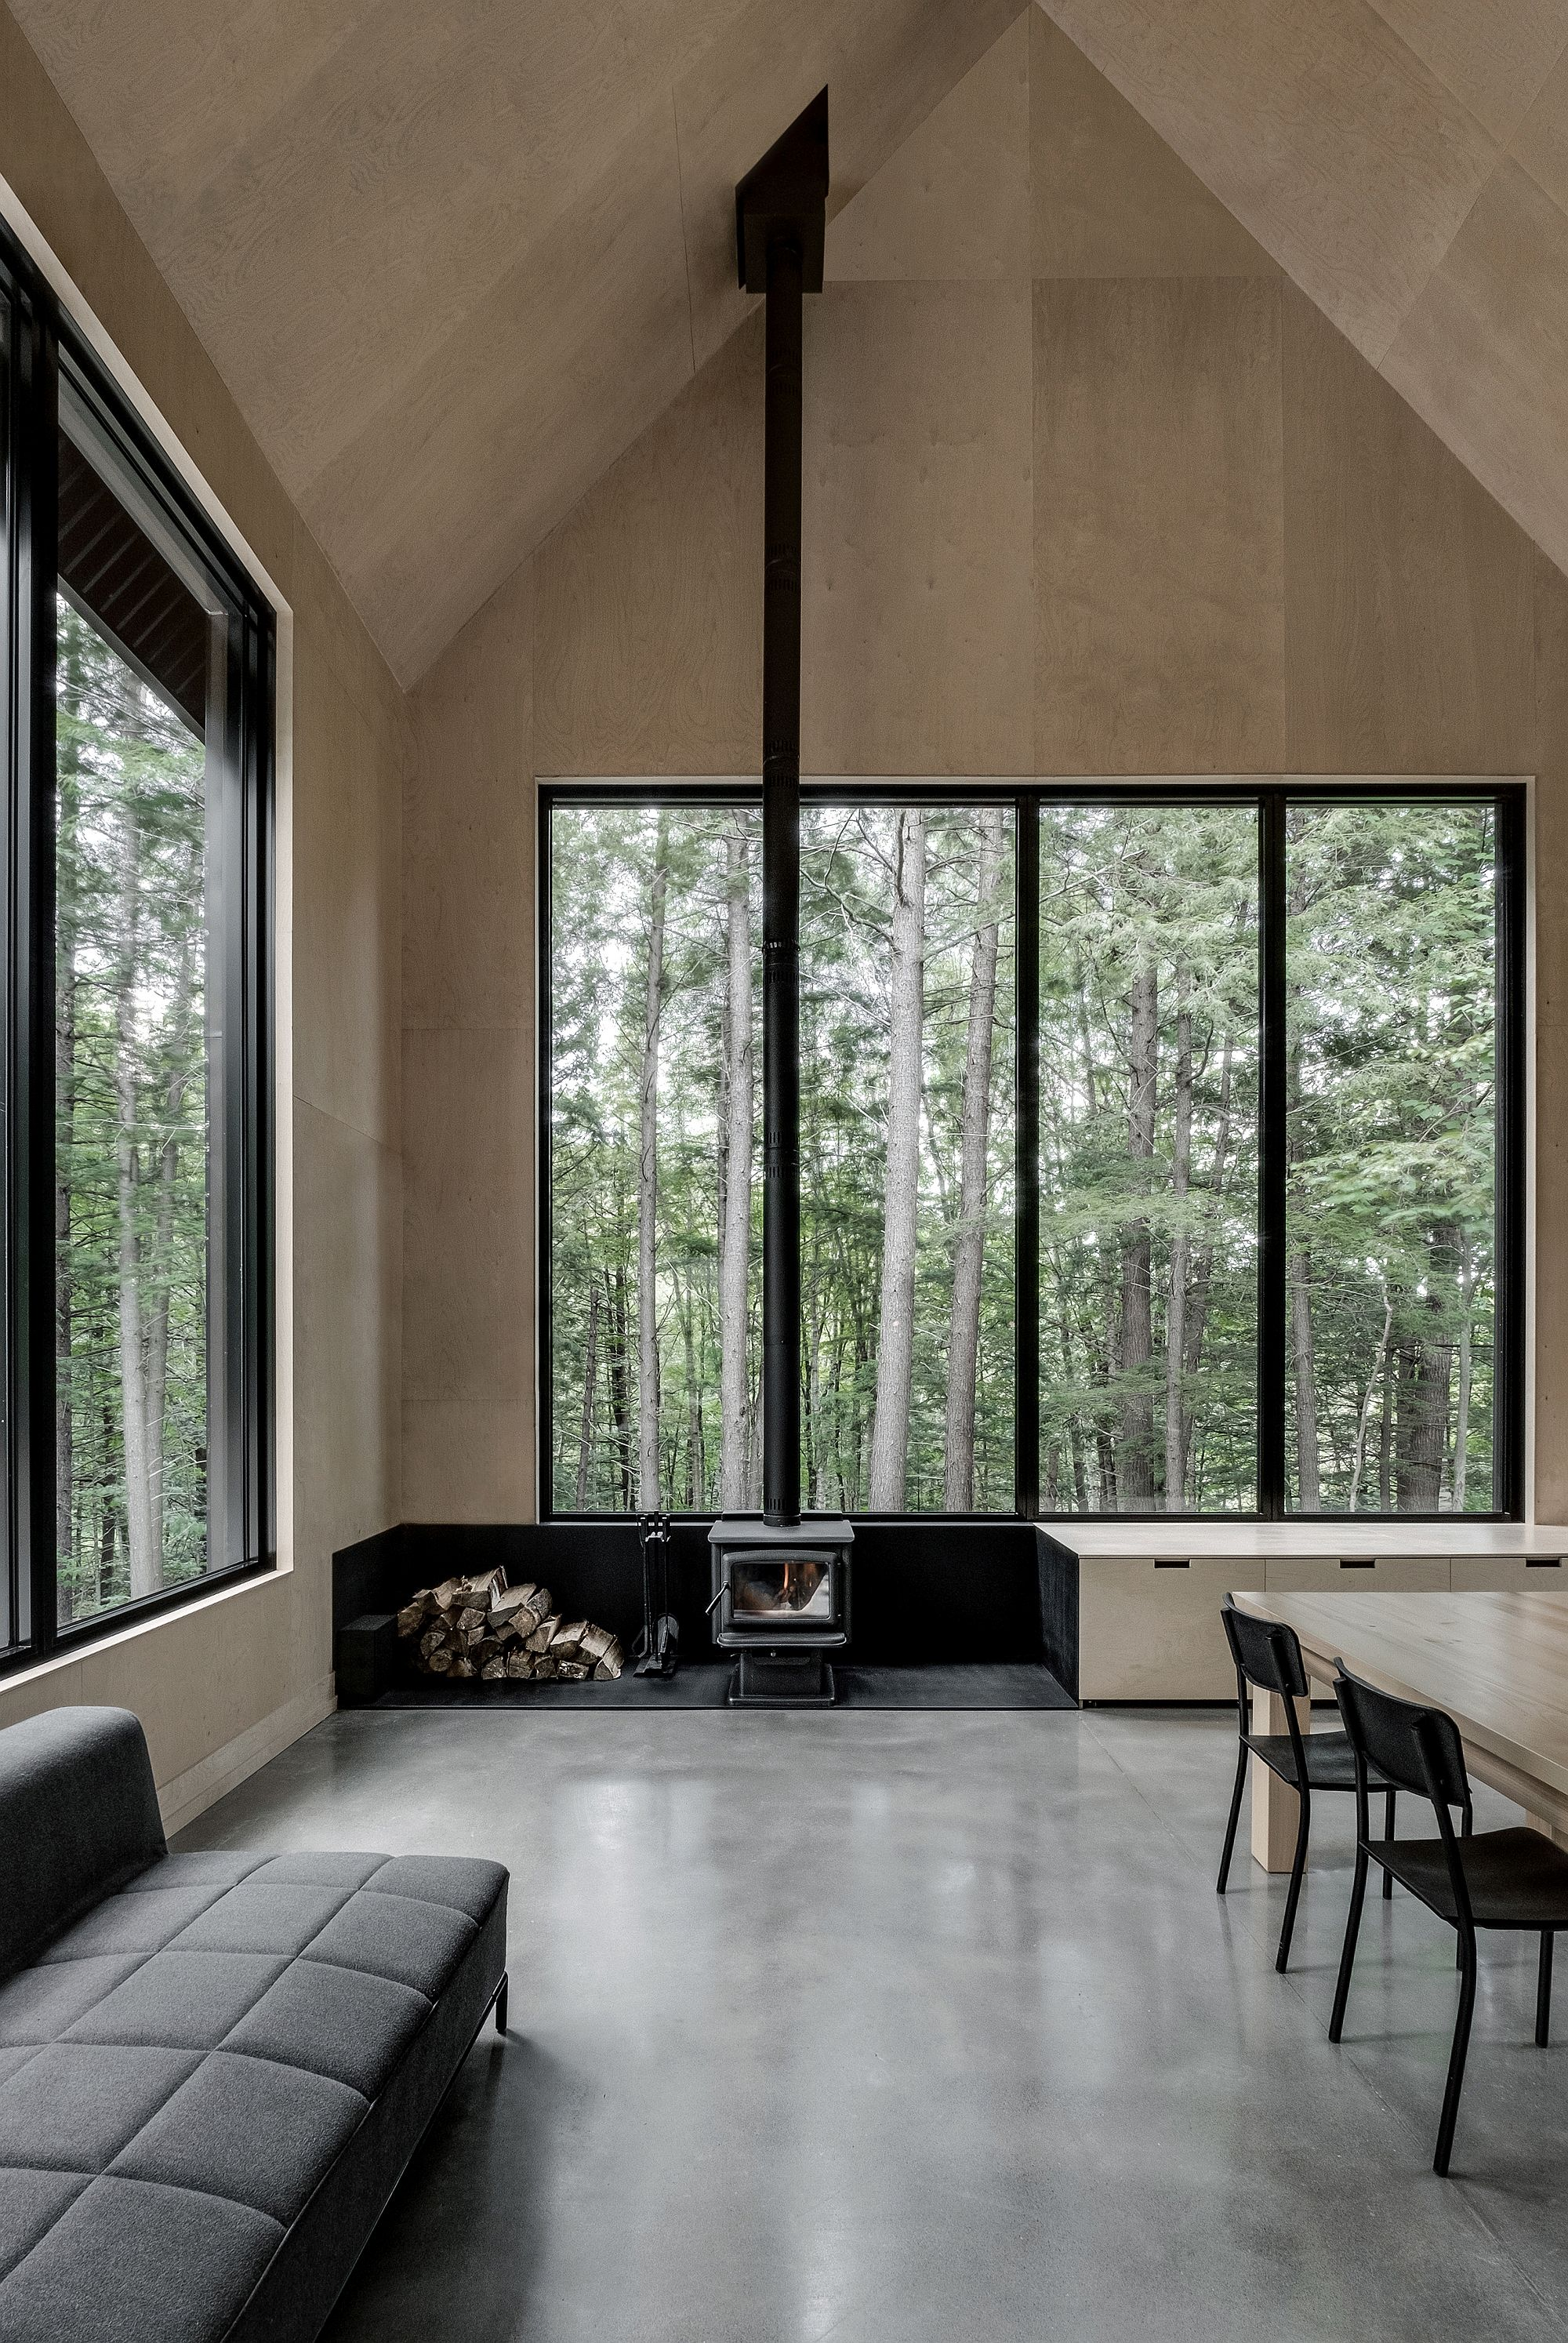 Modern minimal interior of cabin with stunning forest views